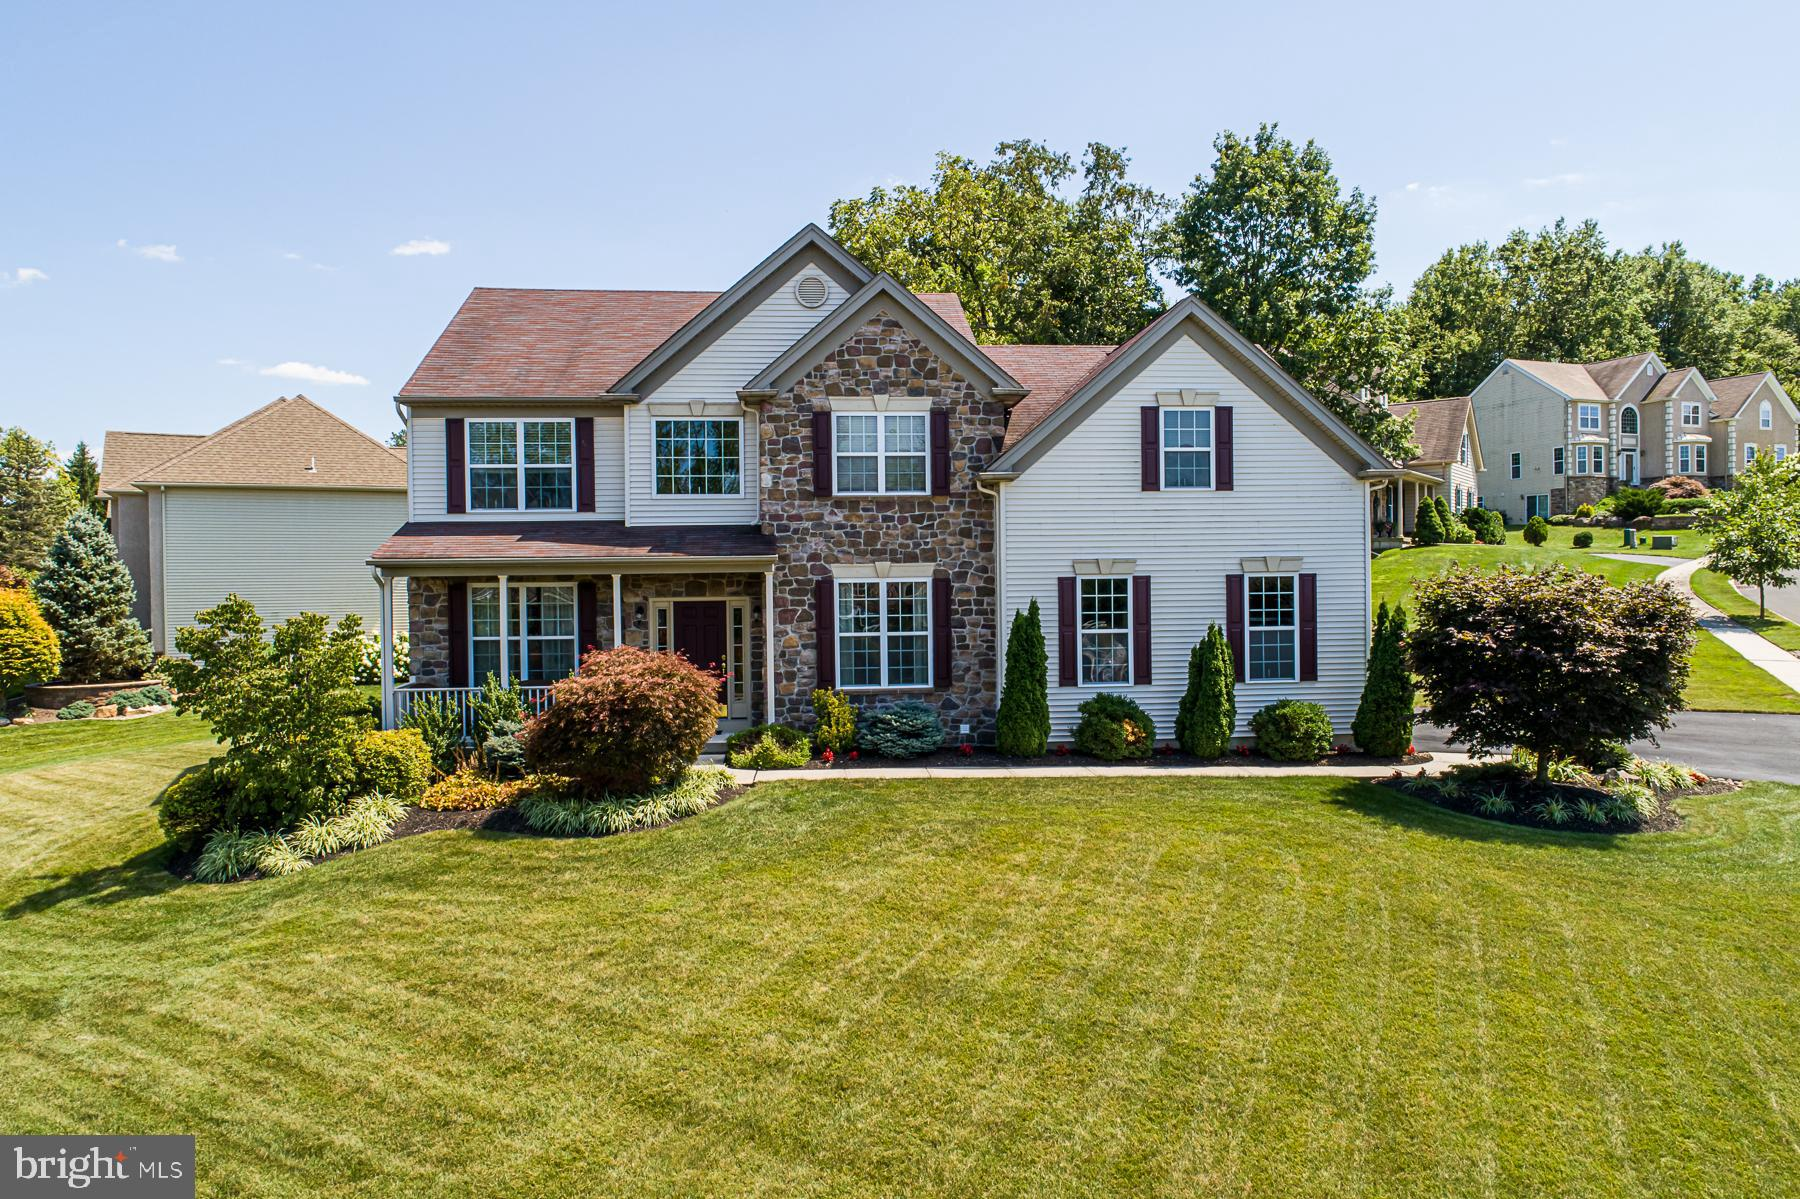 4750 BRITTANY HILL, CENTER VALLEY, PA 18034